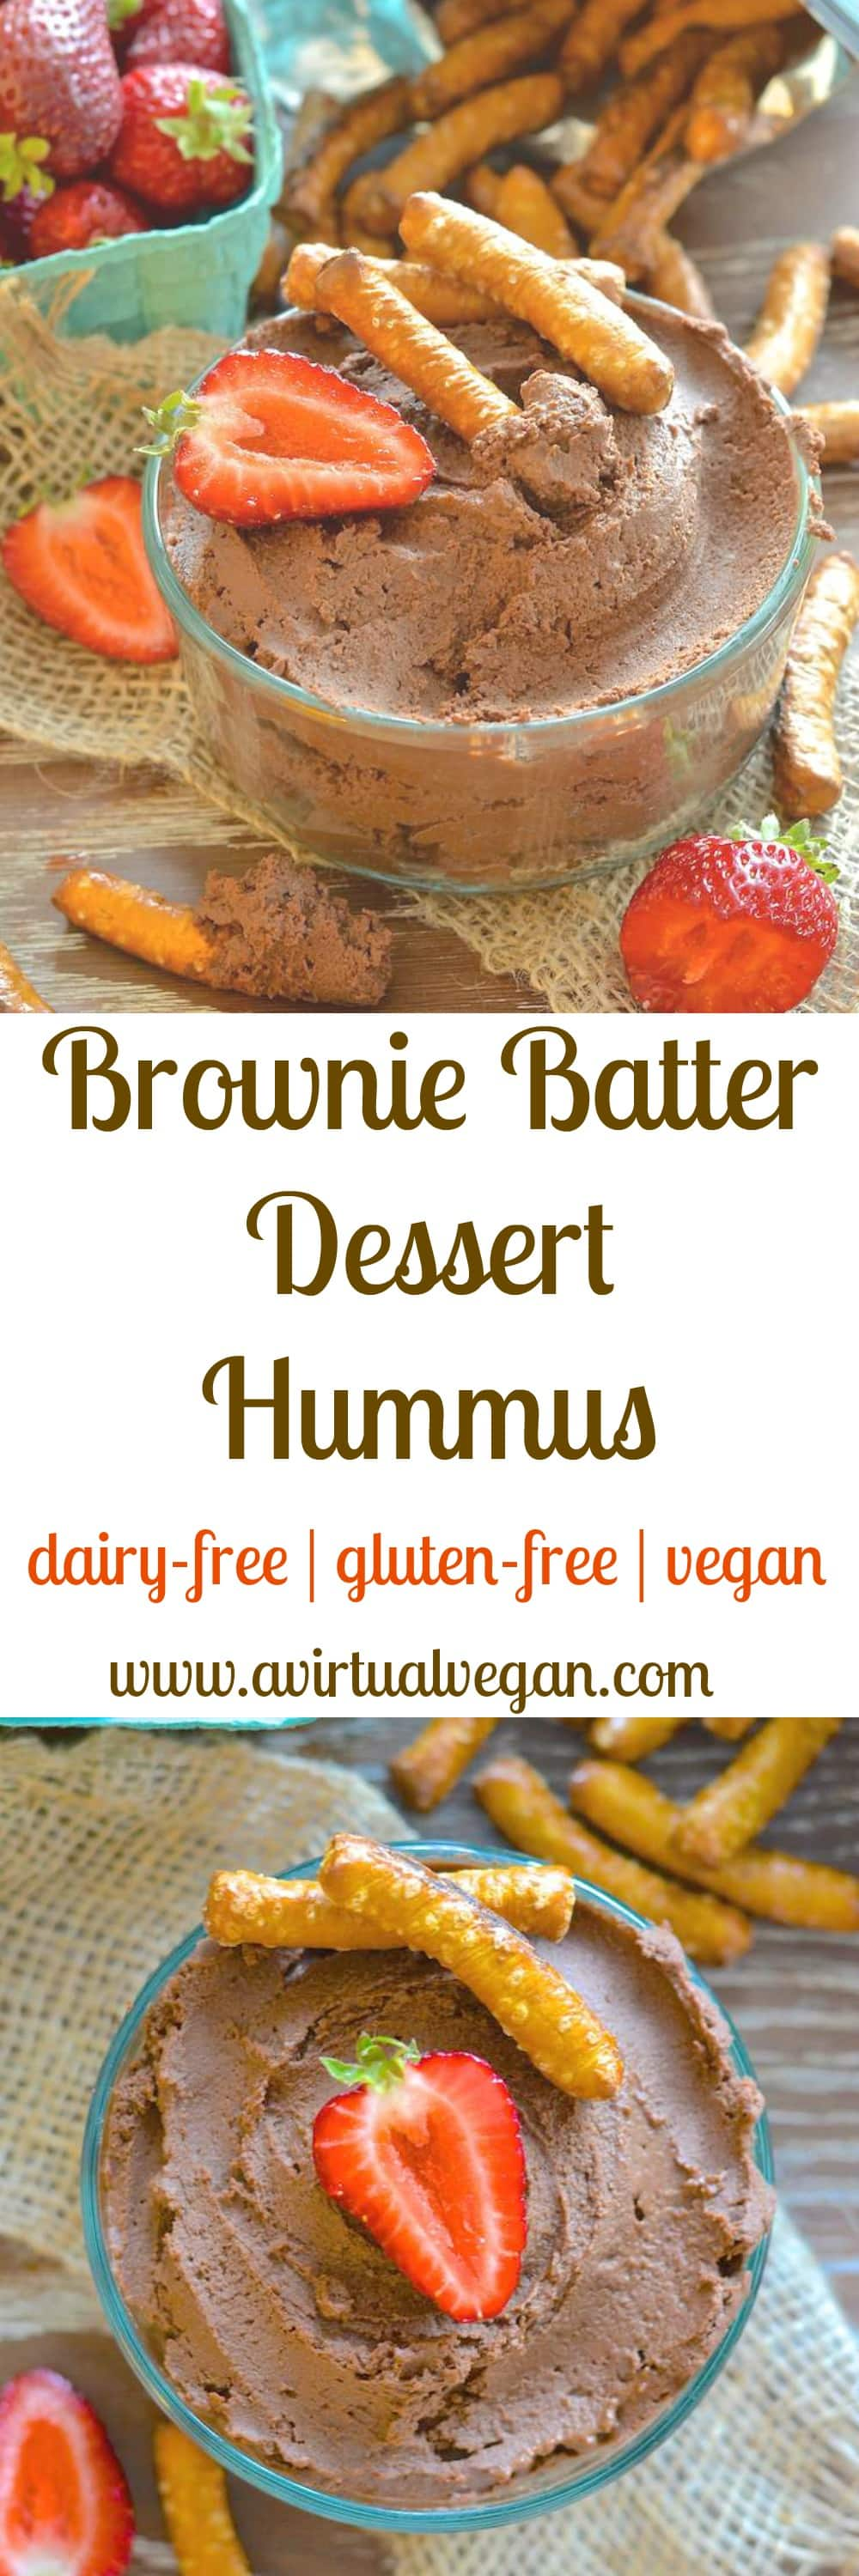 This is what happens when a beautiful chocolate brownie and a handsome can of chickpeas have a secret love child……Yes it's Brownie Batter Dessert Hummus….Yes it is amazingly delicious….And yes dessert hummus is a thing!